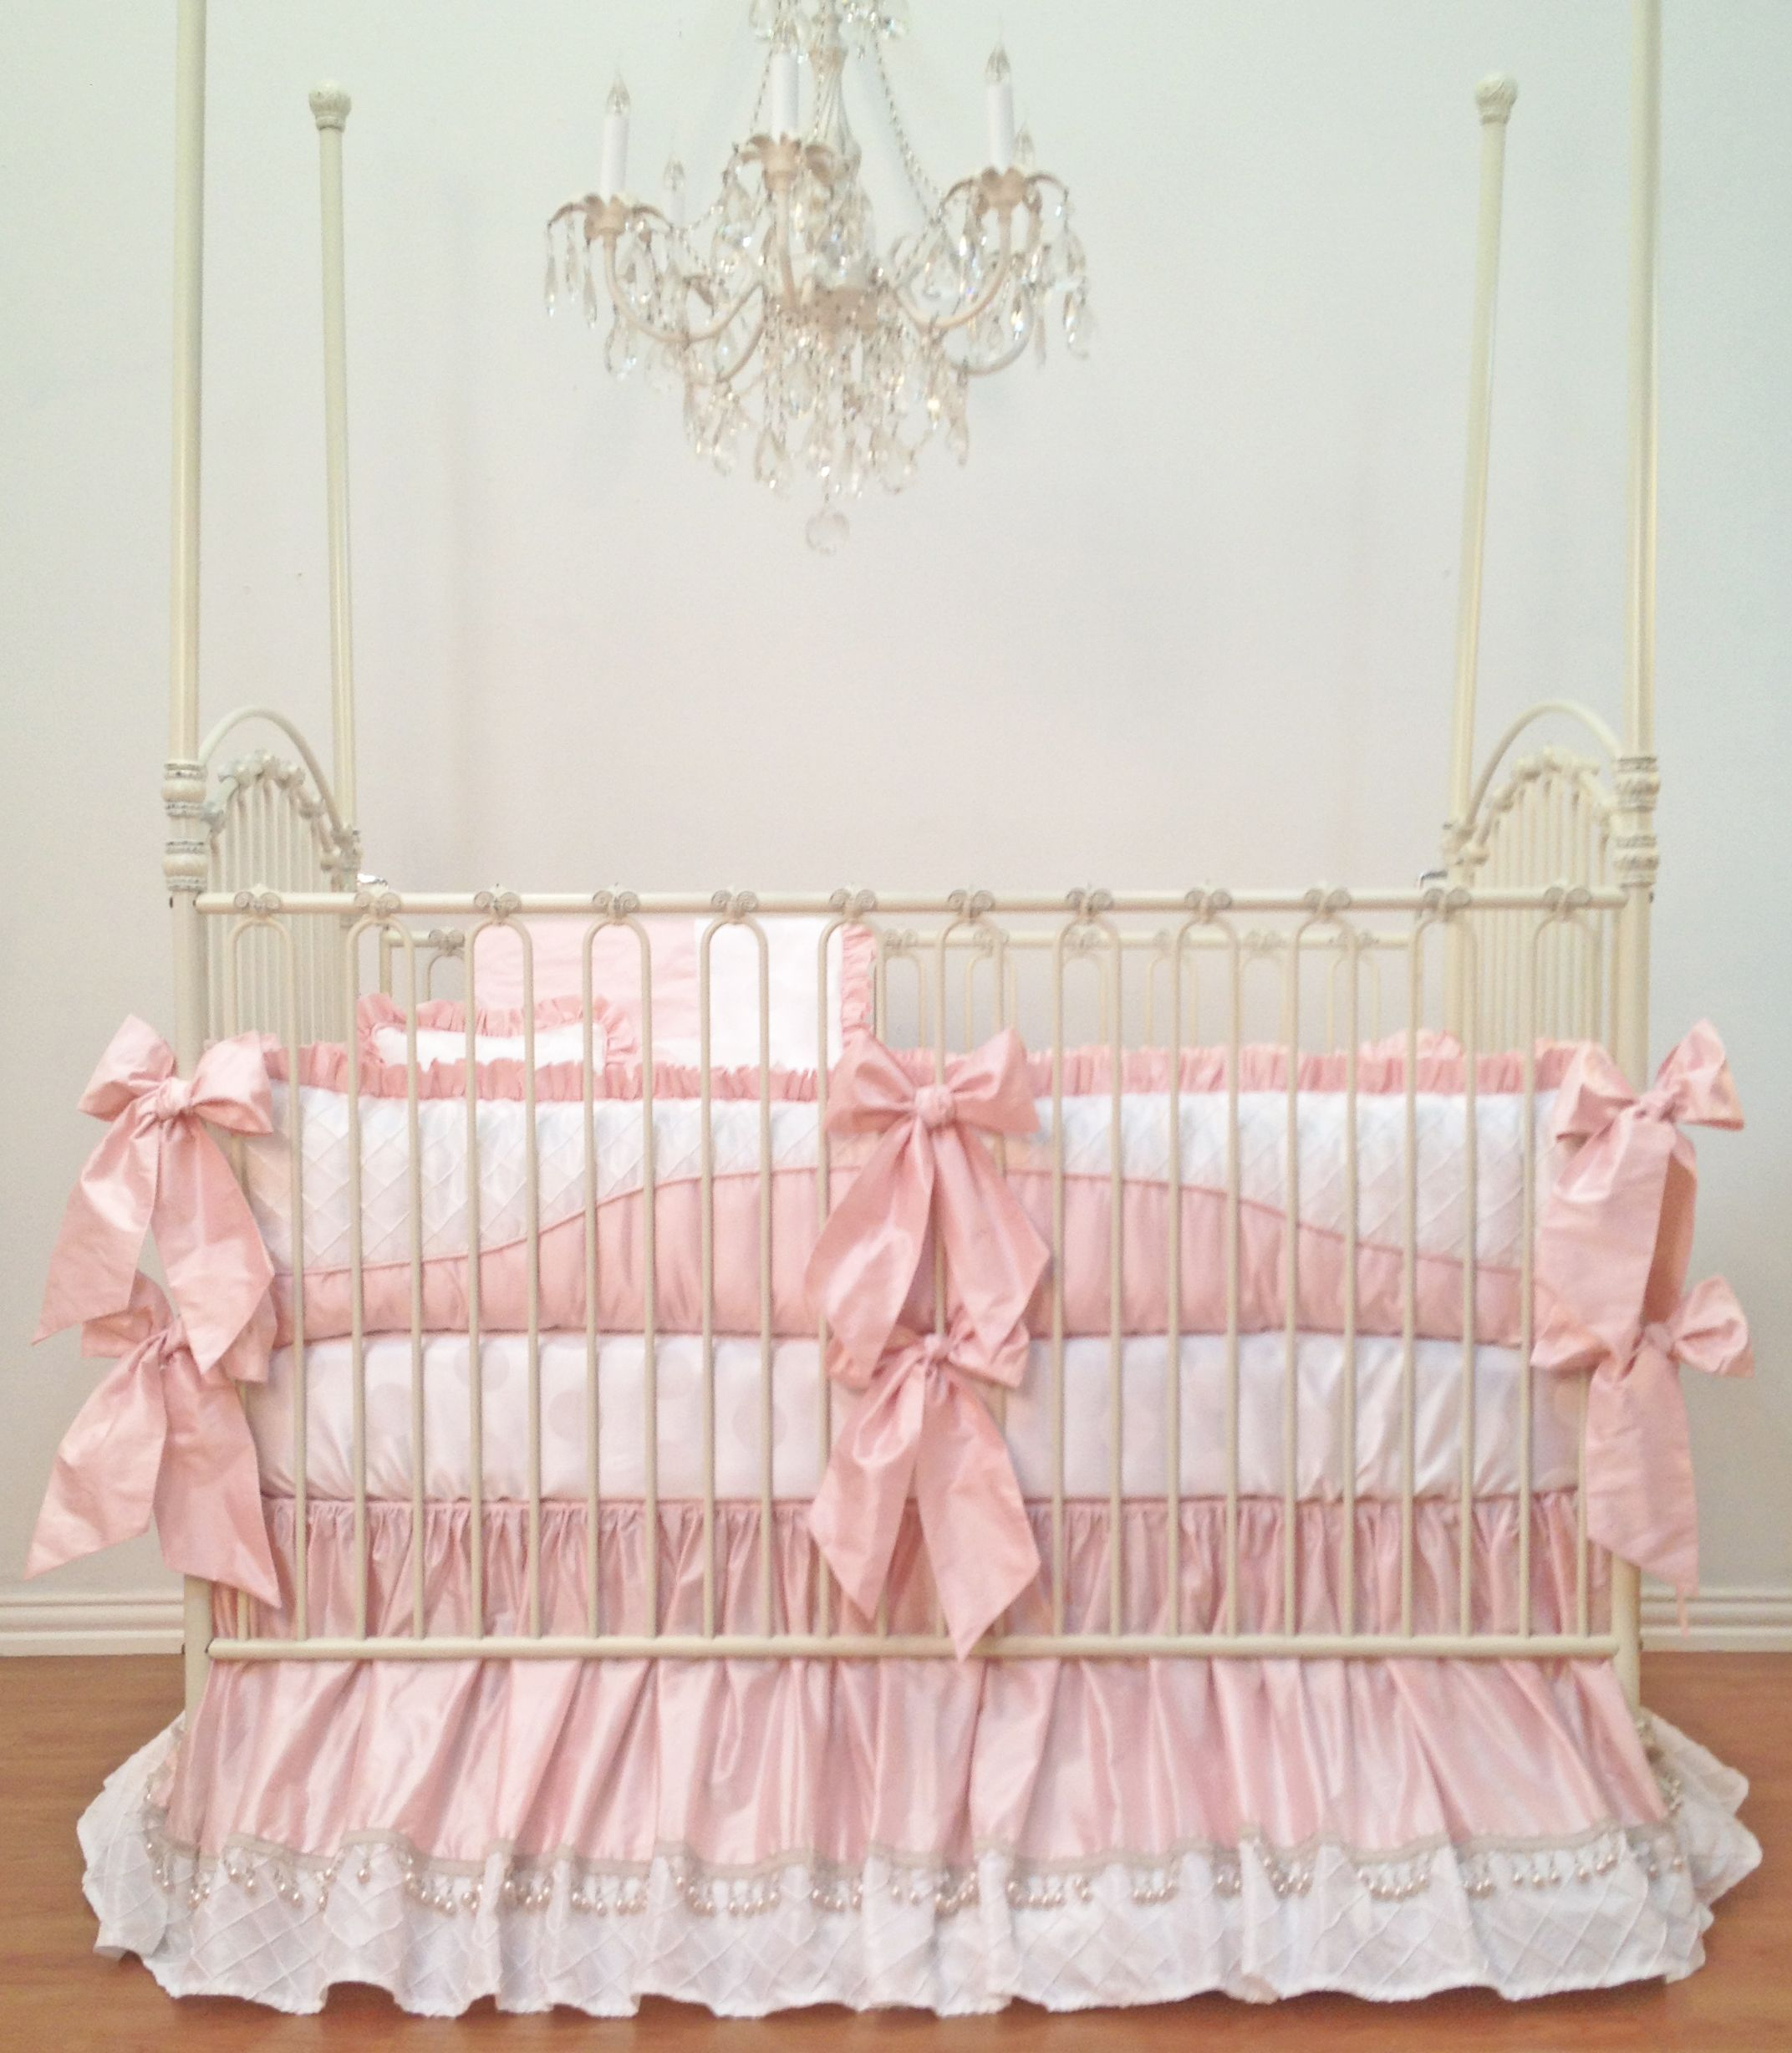 of linen make sets bedding shabby for rebecca and size western your furniture crib ways full purple grey mattress choose target baby compact phones neutral nursery beautiful a room navy secure design cribs black the to easy white chic bedroom